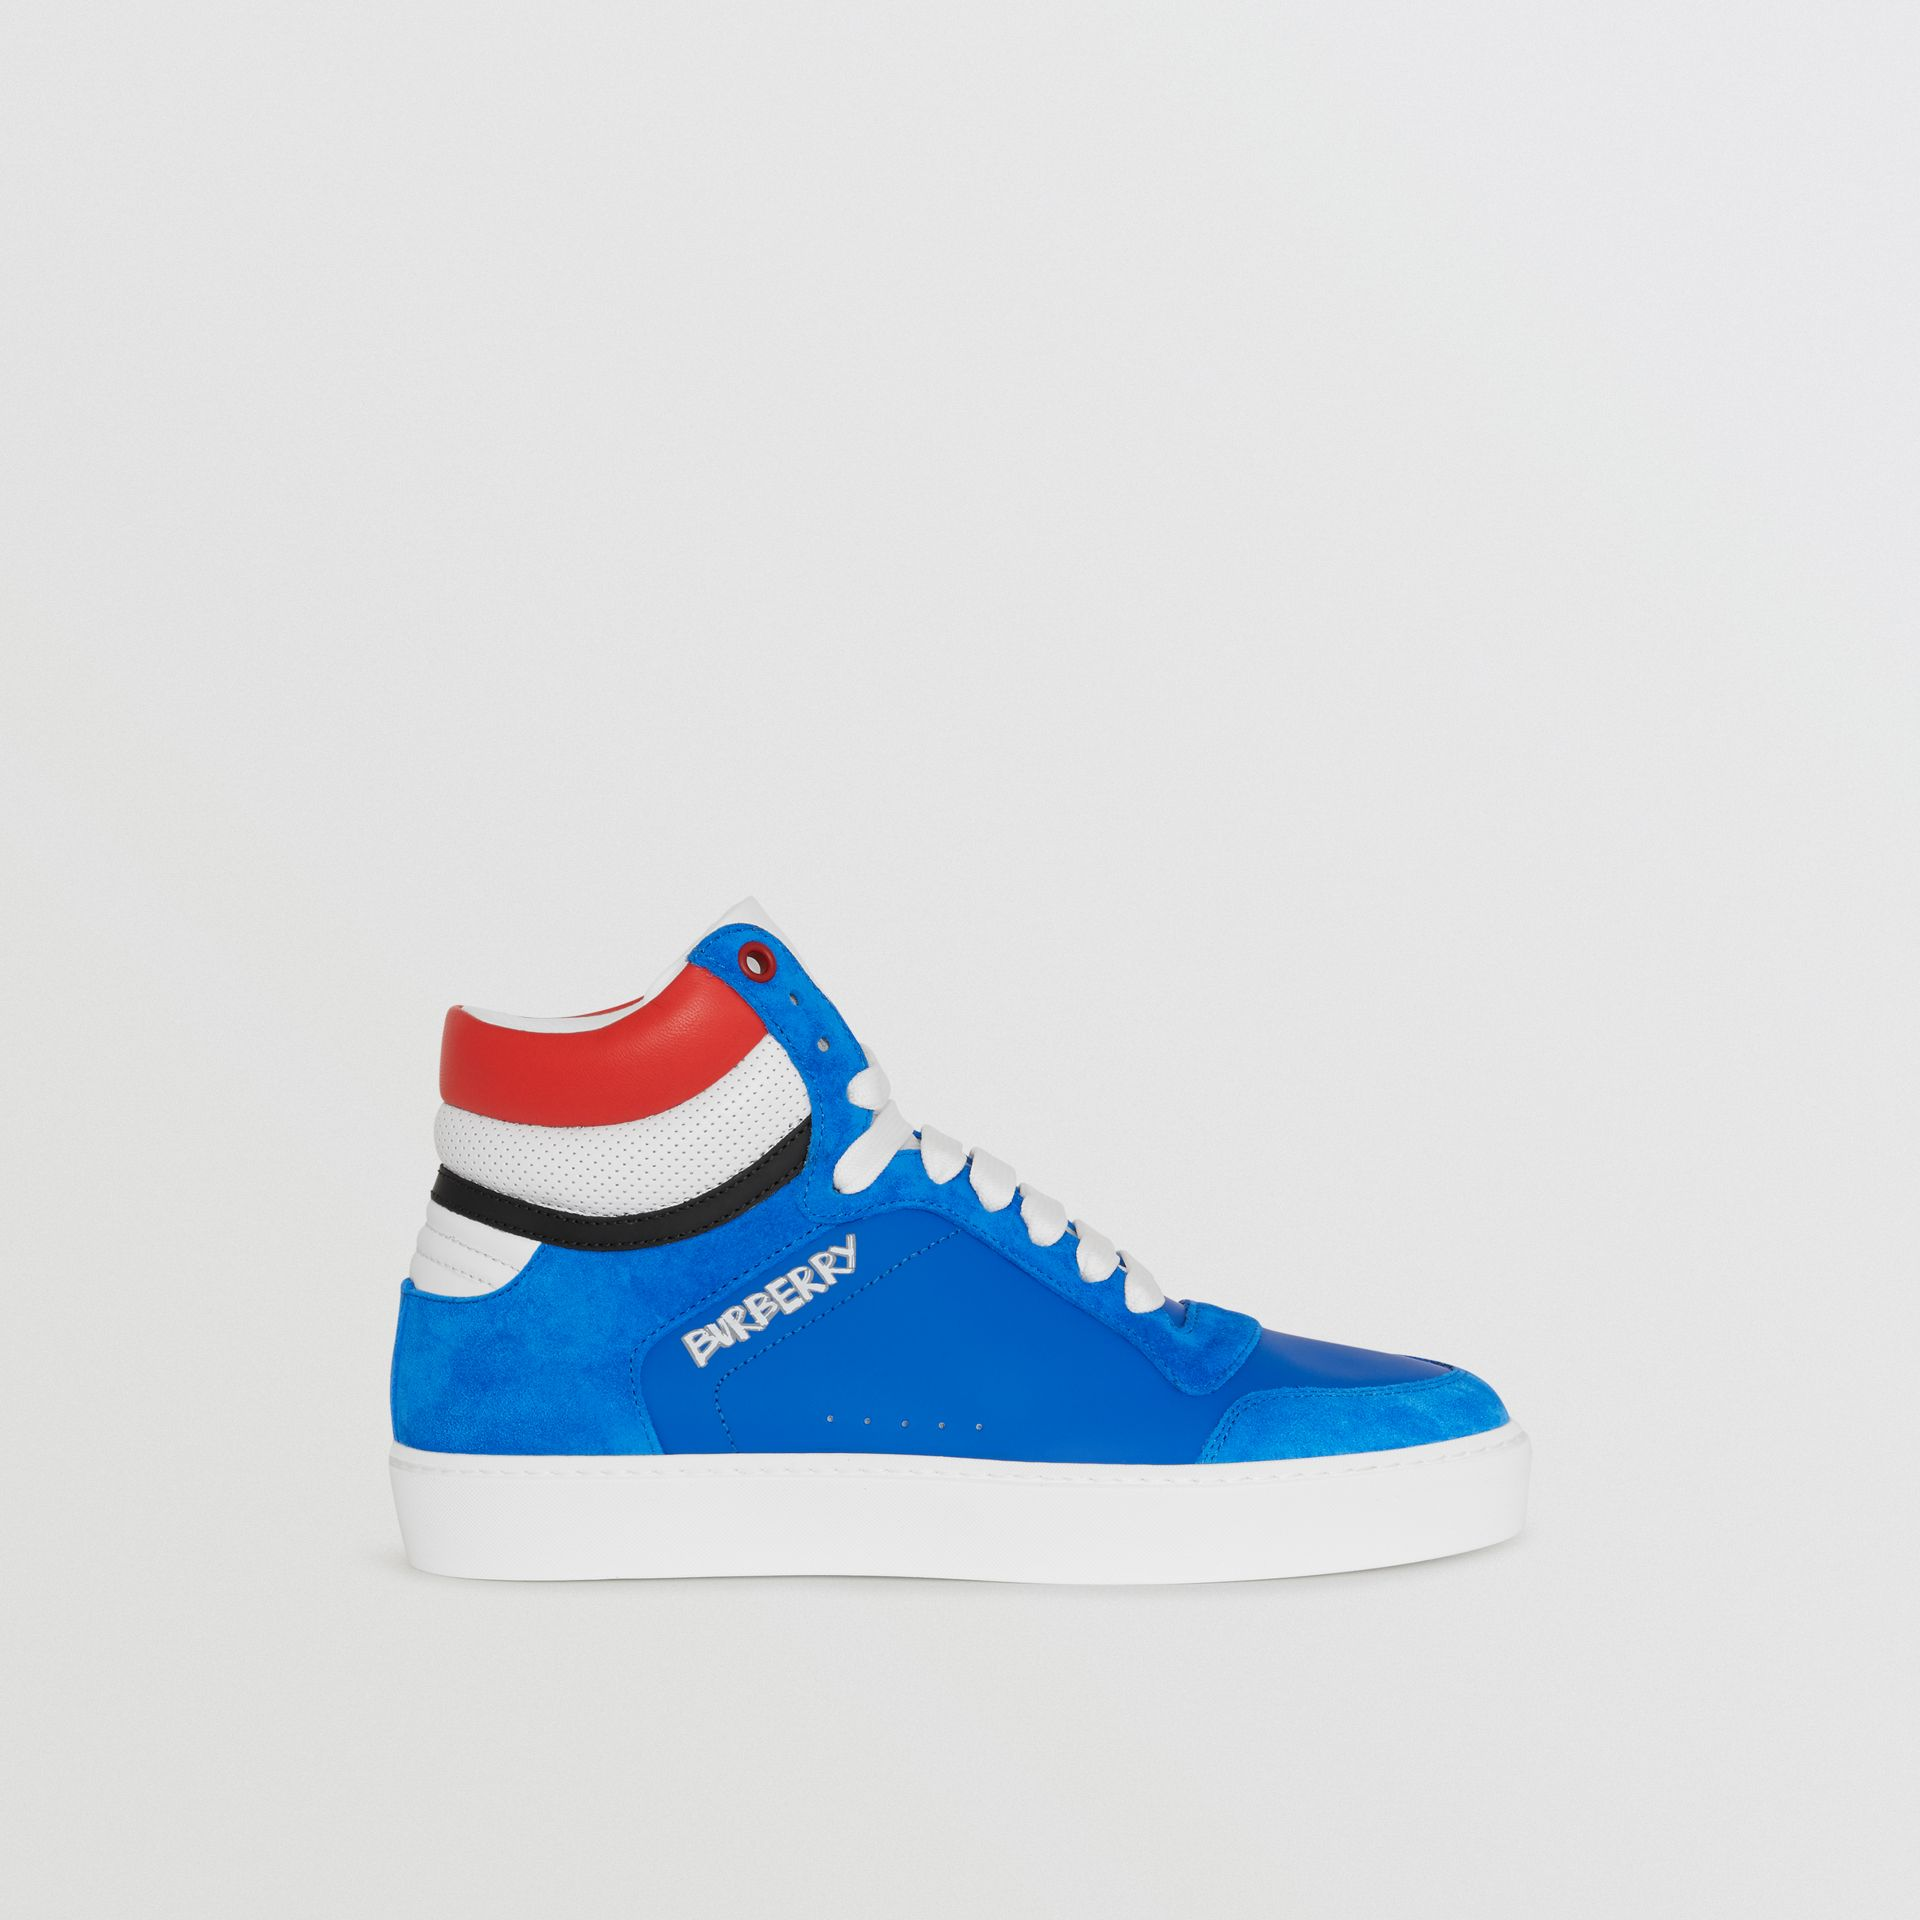 Leather and Suede High-top Sneakers in Bright Sky Blue - Women | Burberry United States - gallery image 5